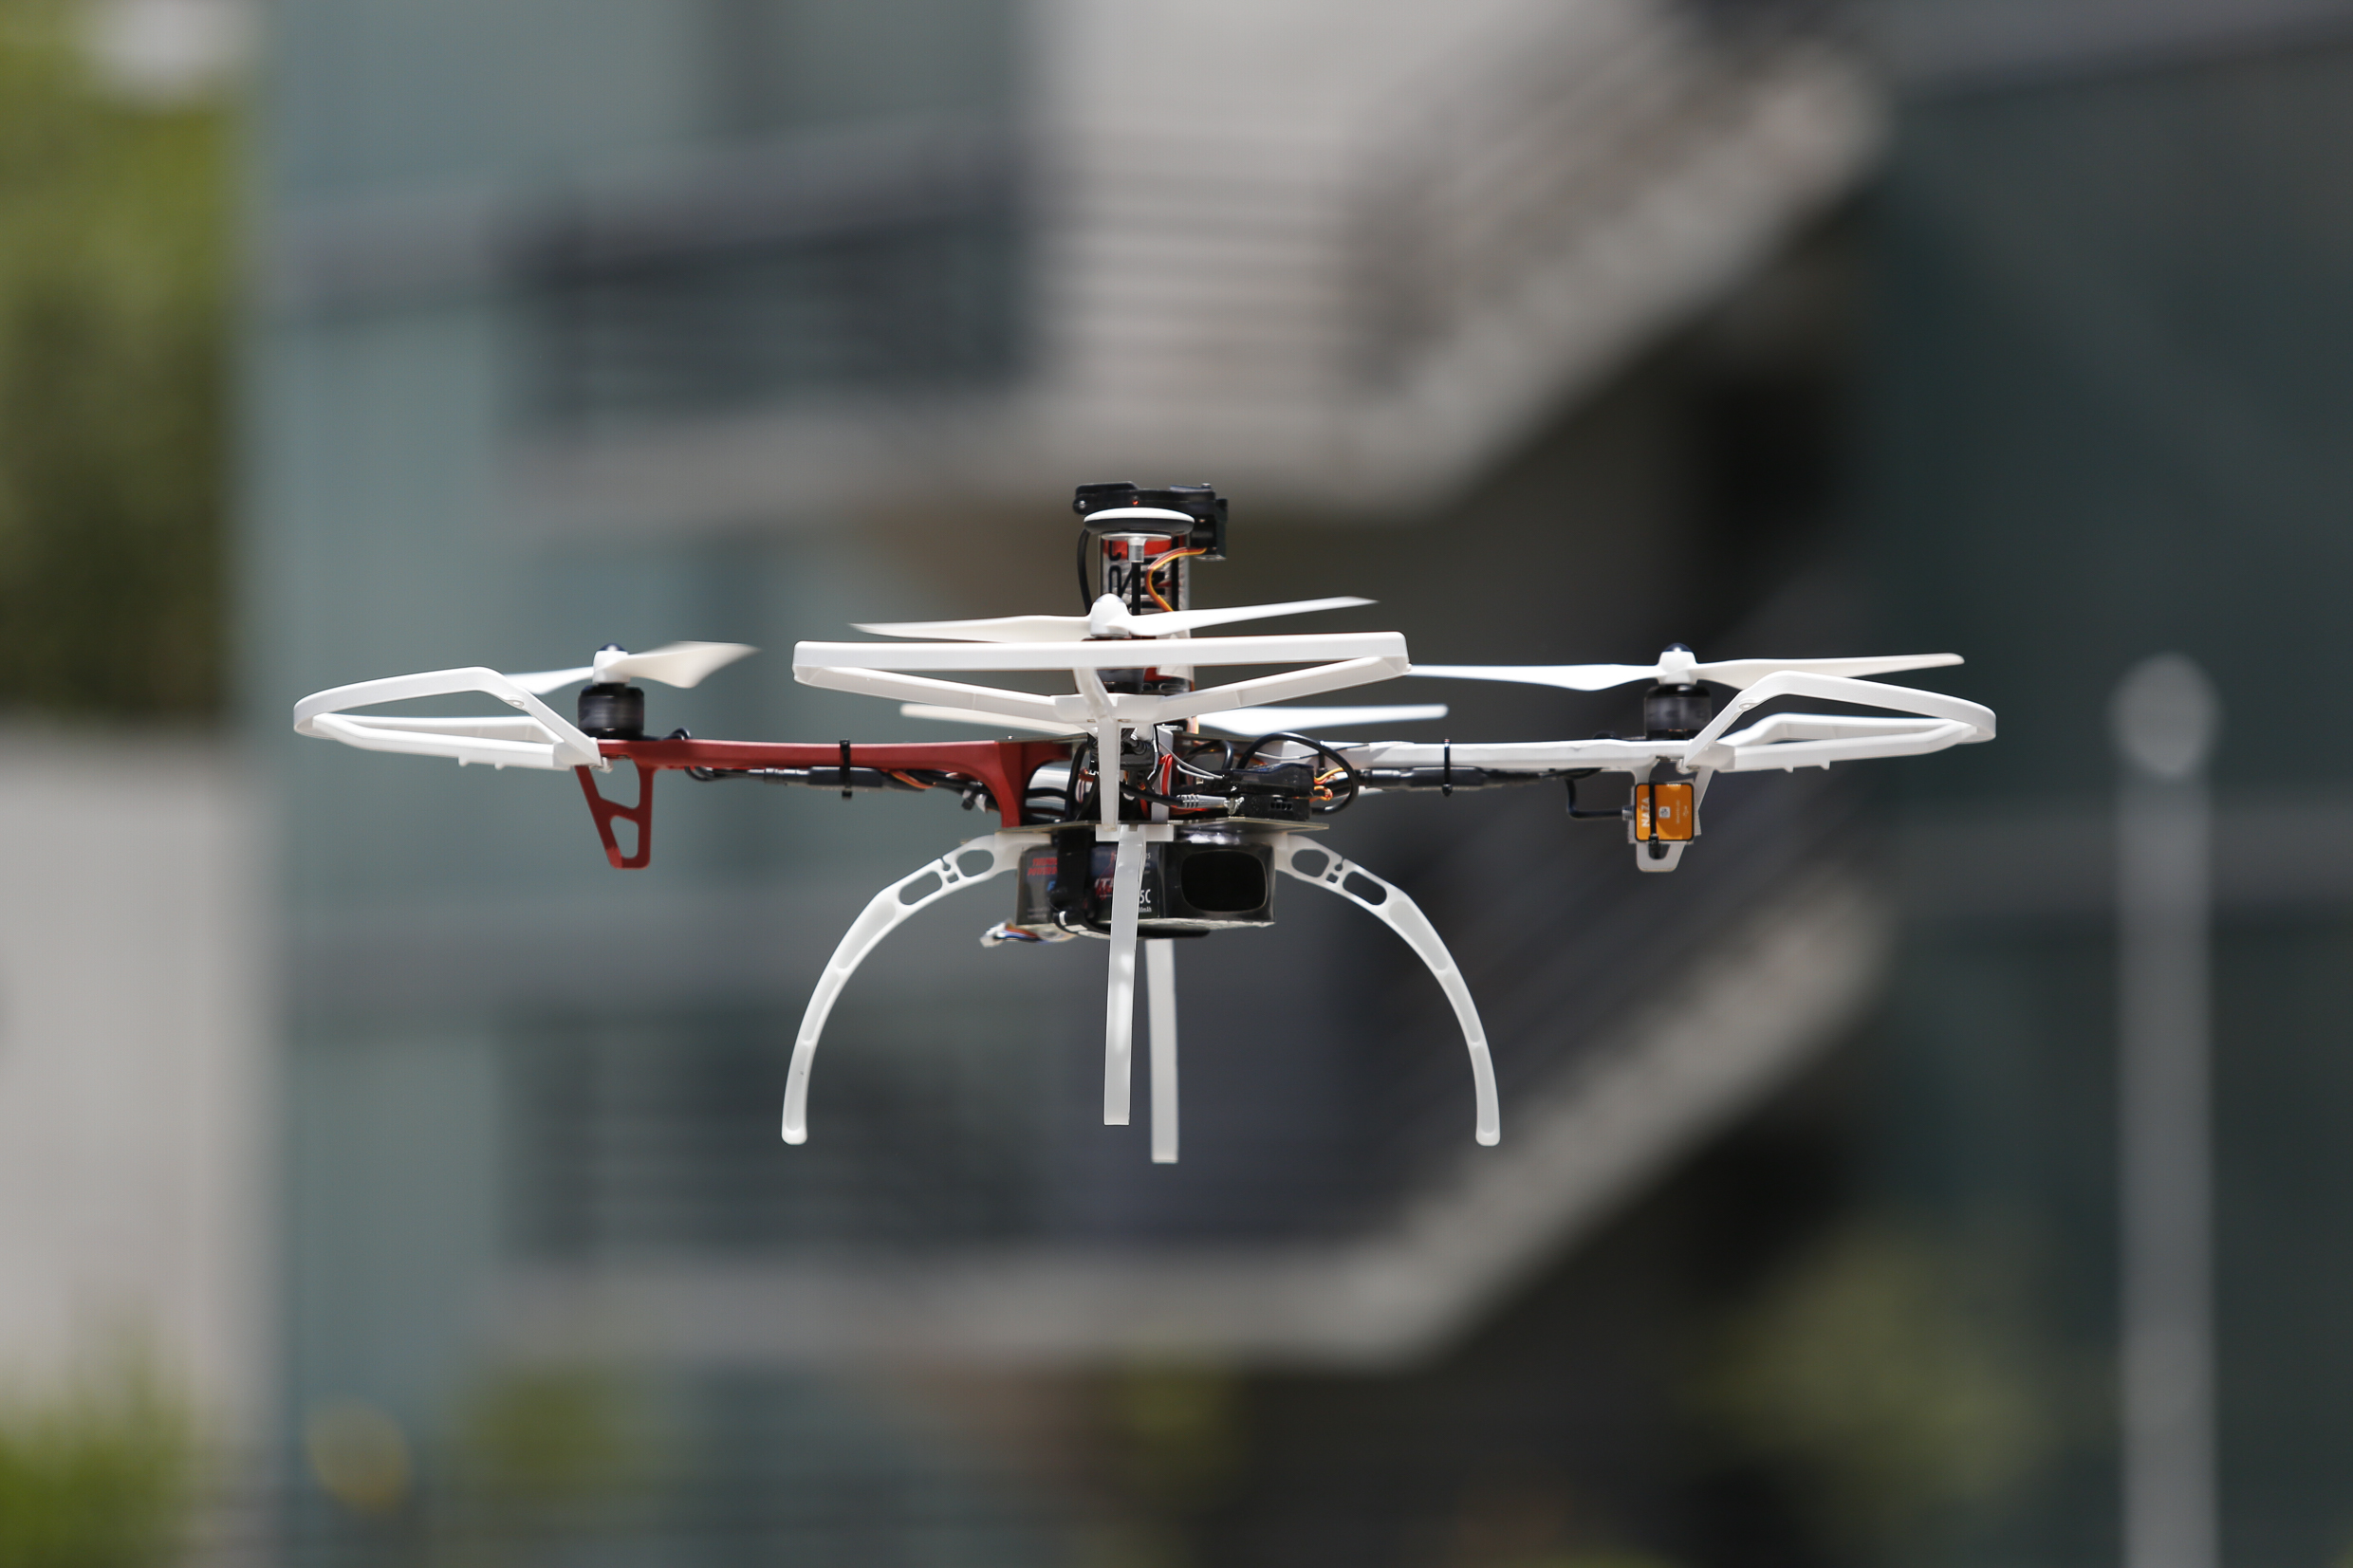 US Senate bill would allow government to track and destroy drones